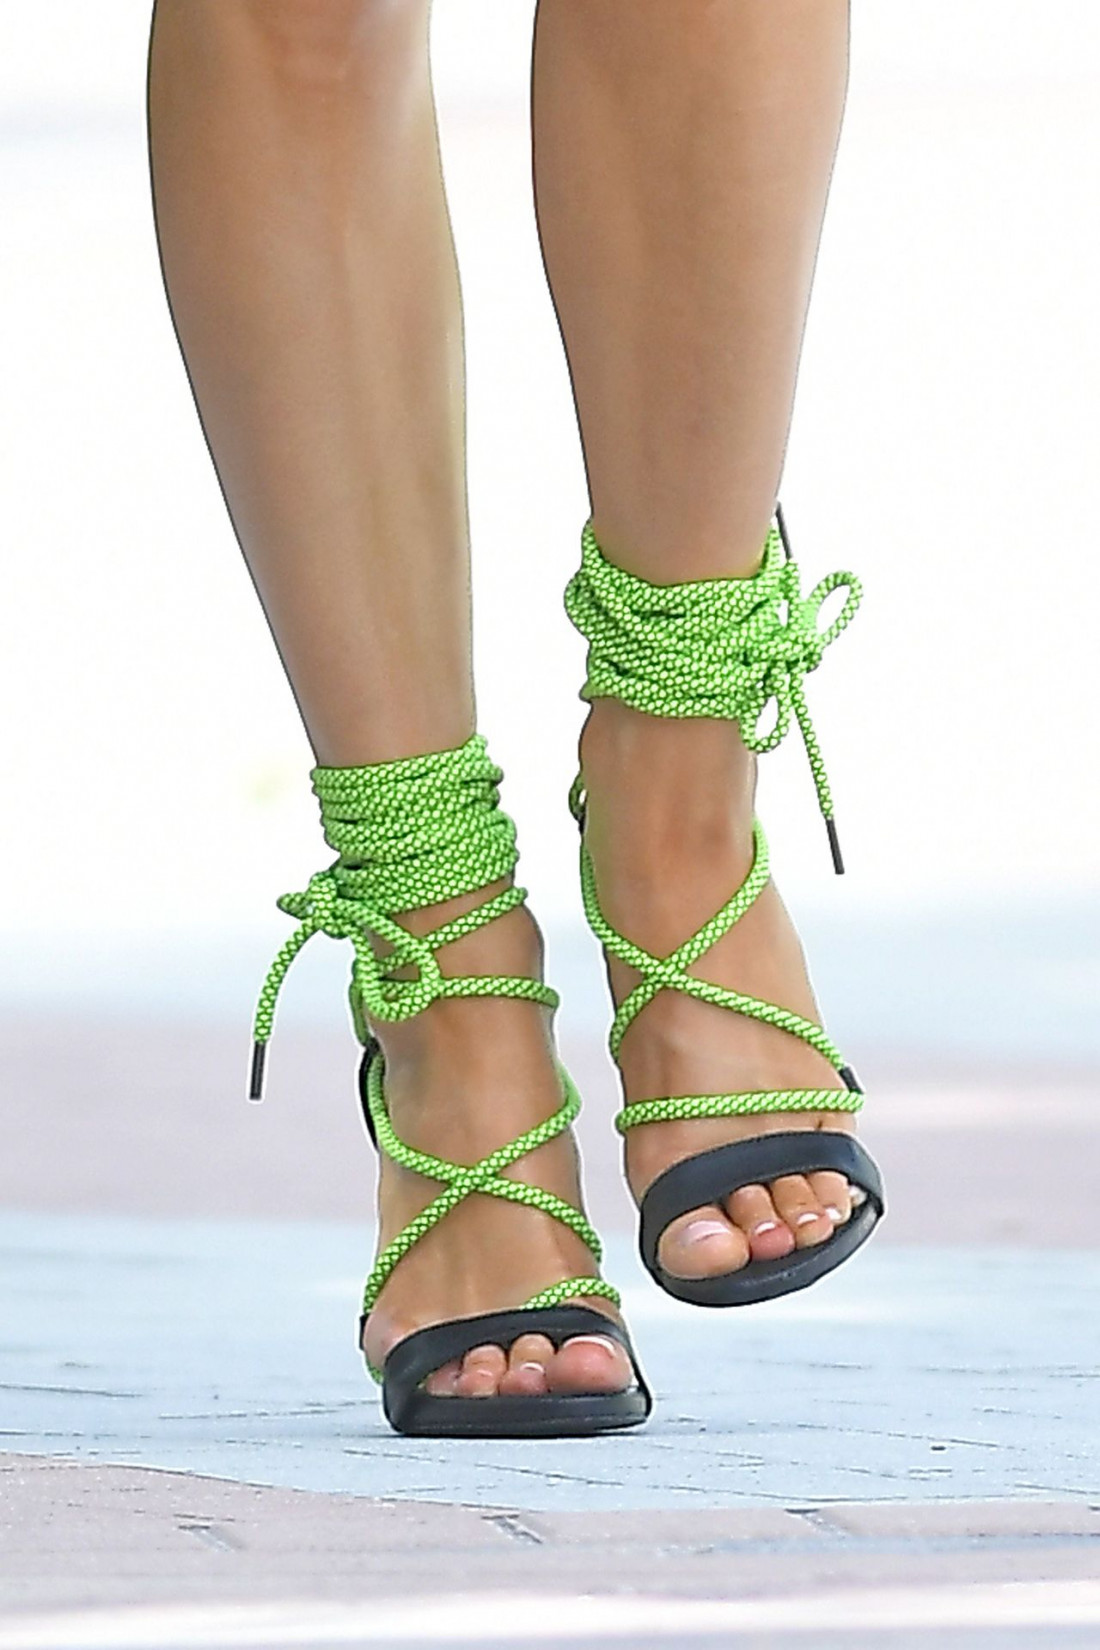 Joy-Corrigan-Sexy-Feet-in-Sandals-4.jpg